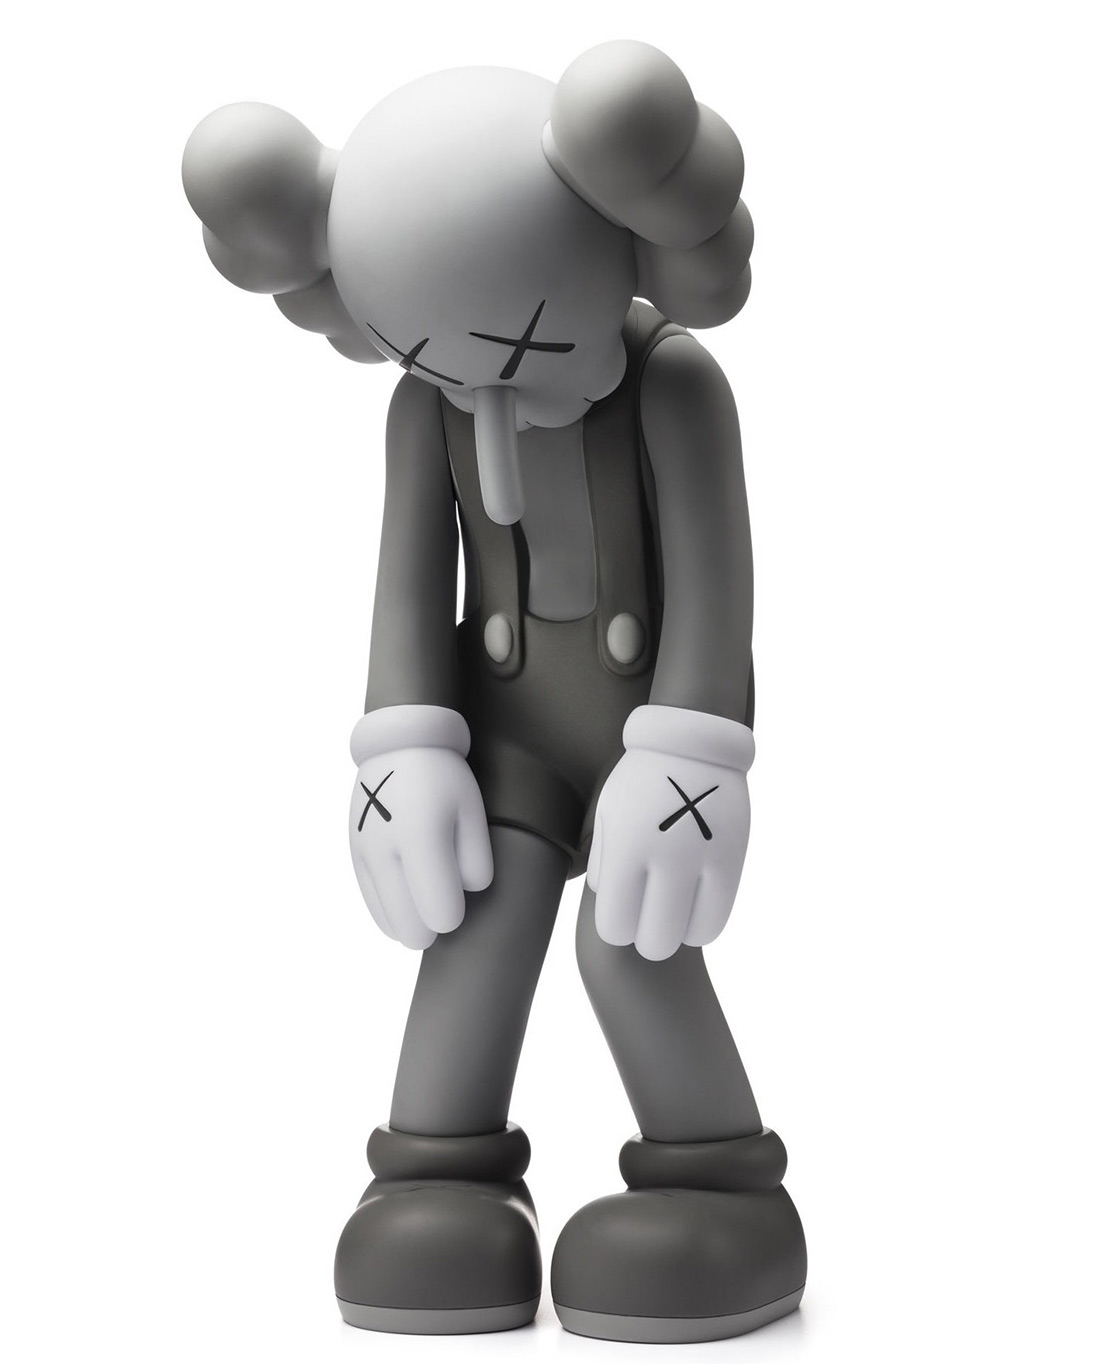 KAWS-SMALLIE-GRAY-EVERPRESS-VINYL-TOYS